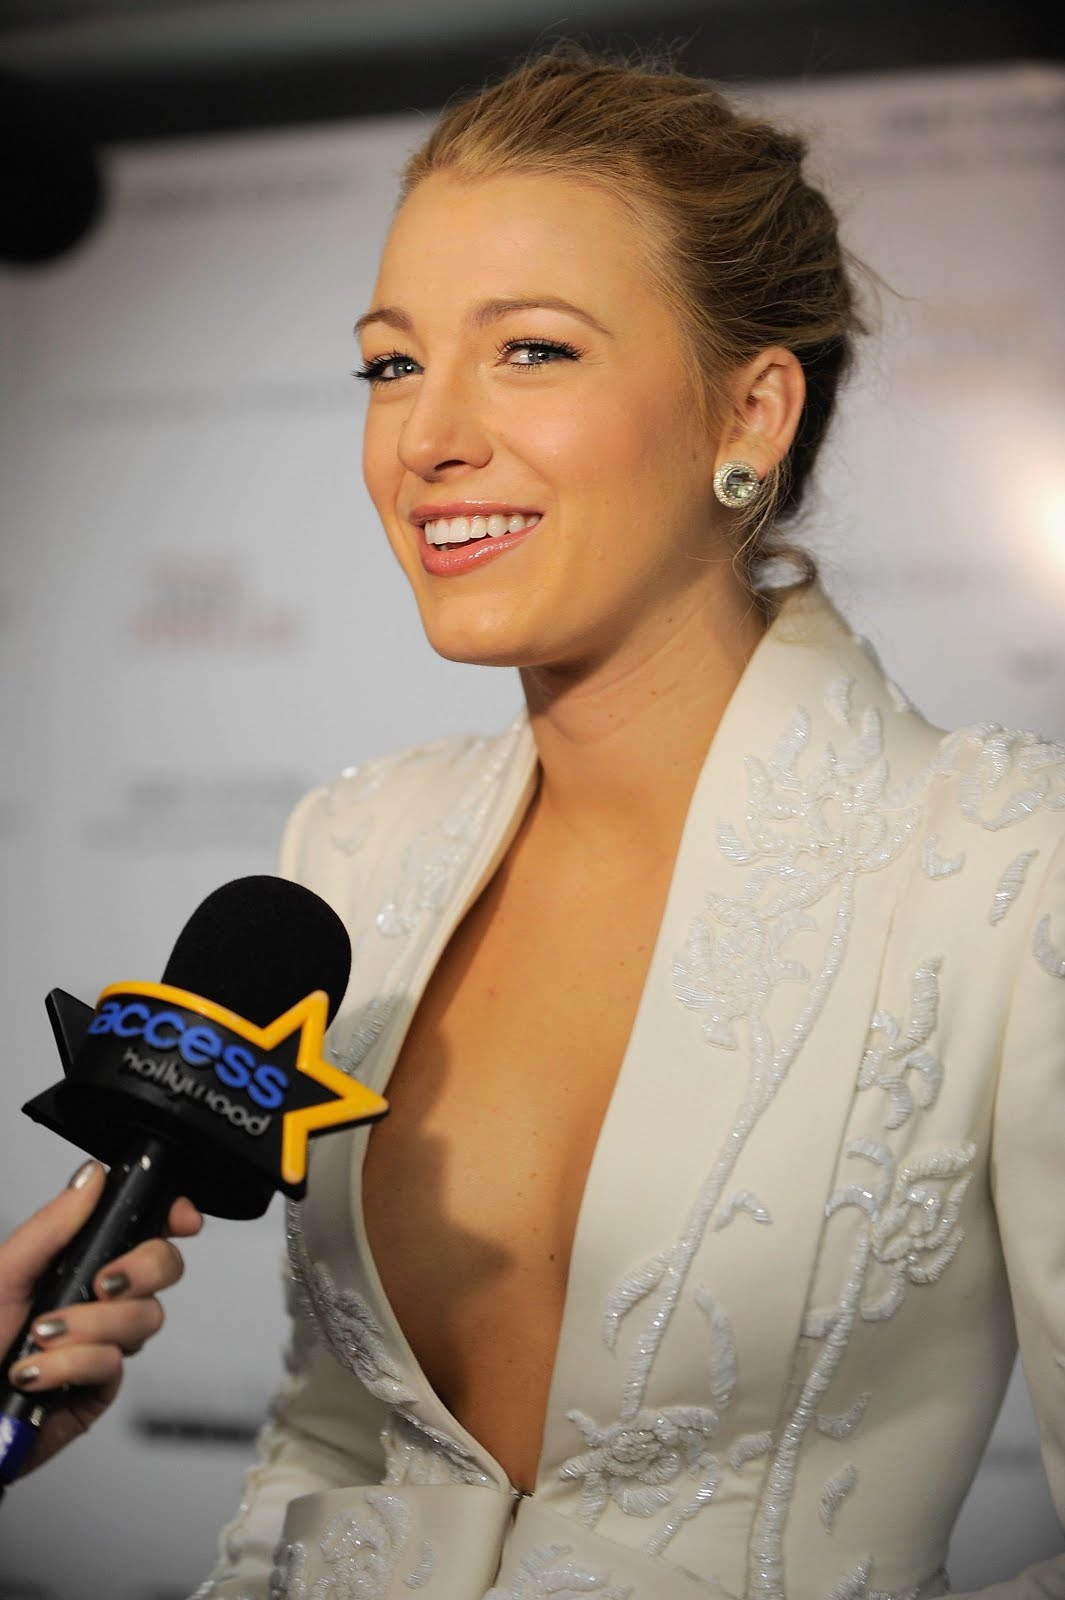 Blake+Lively+Alleged+Leaked+Nude+iPhone+Photos+www.GutterUncensoredPlus.com+006 Miley cyrus nip slip horse uncensored you can visit this